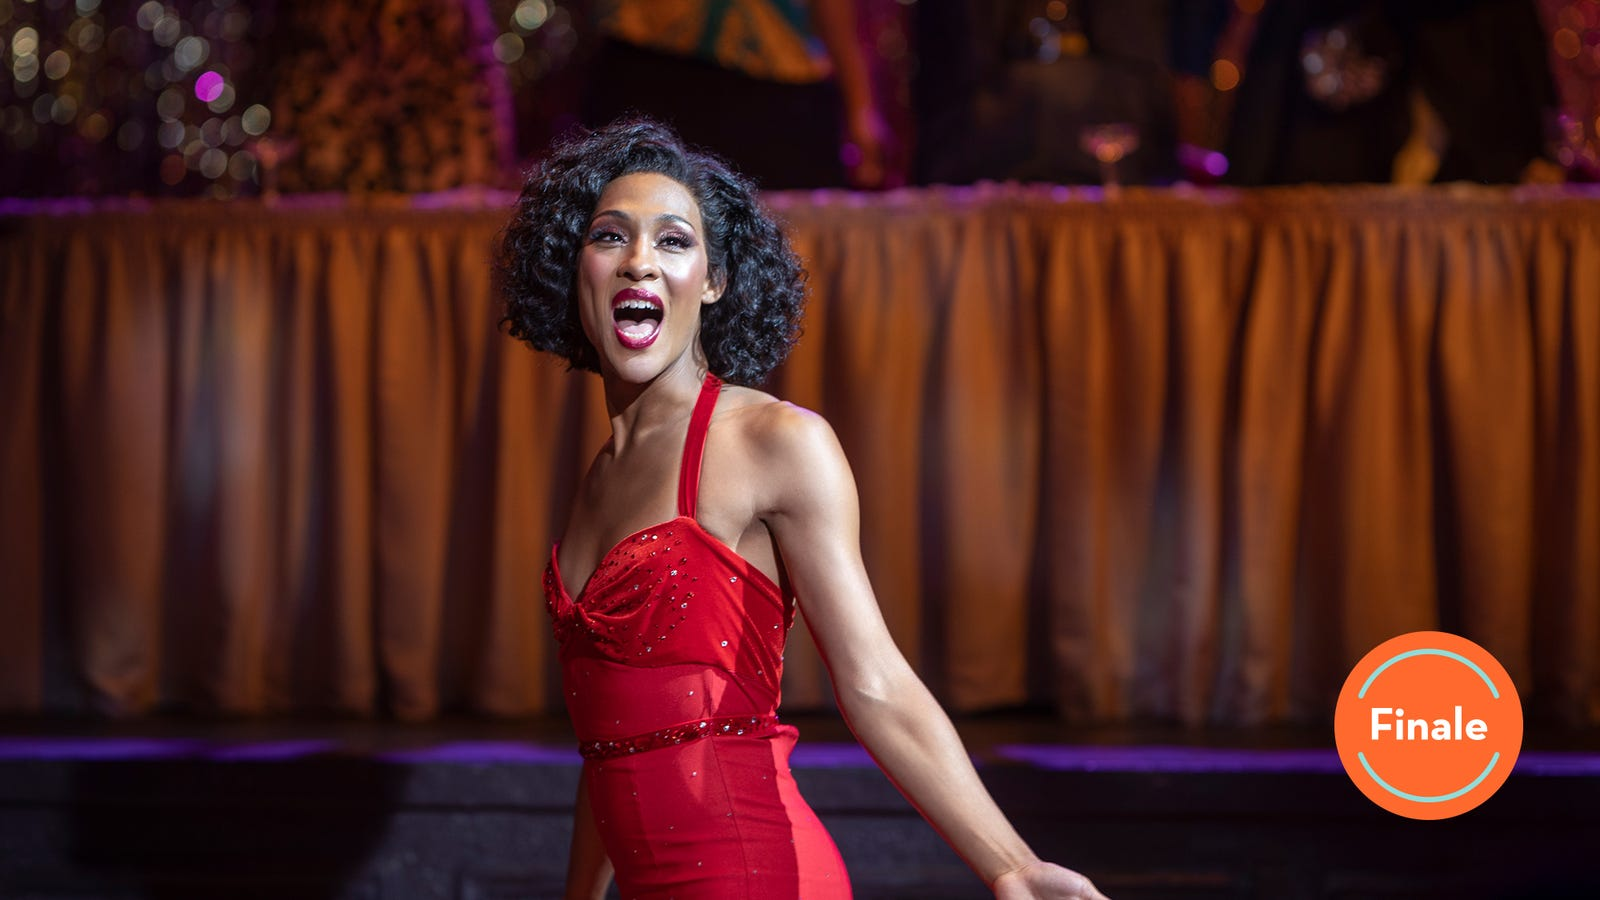 Pose's second season finale serves romance, drama, and spectacle